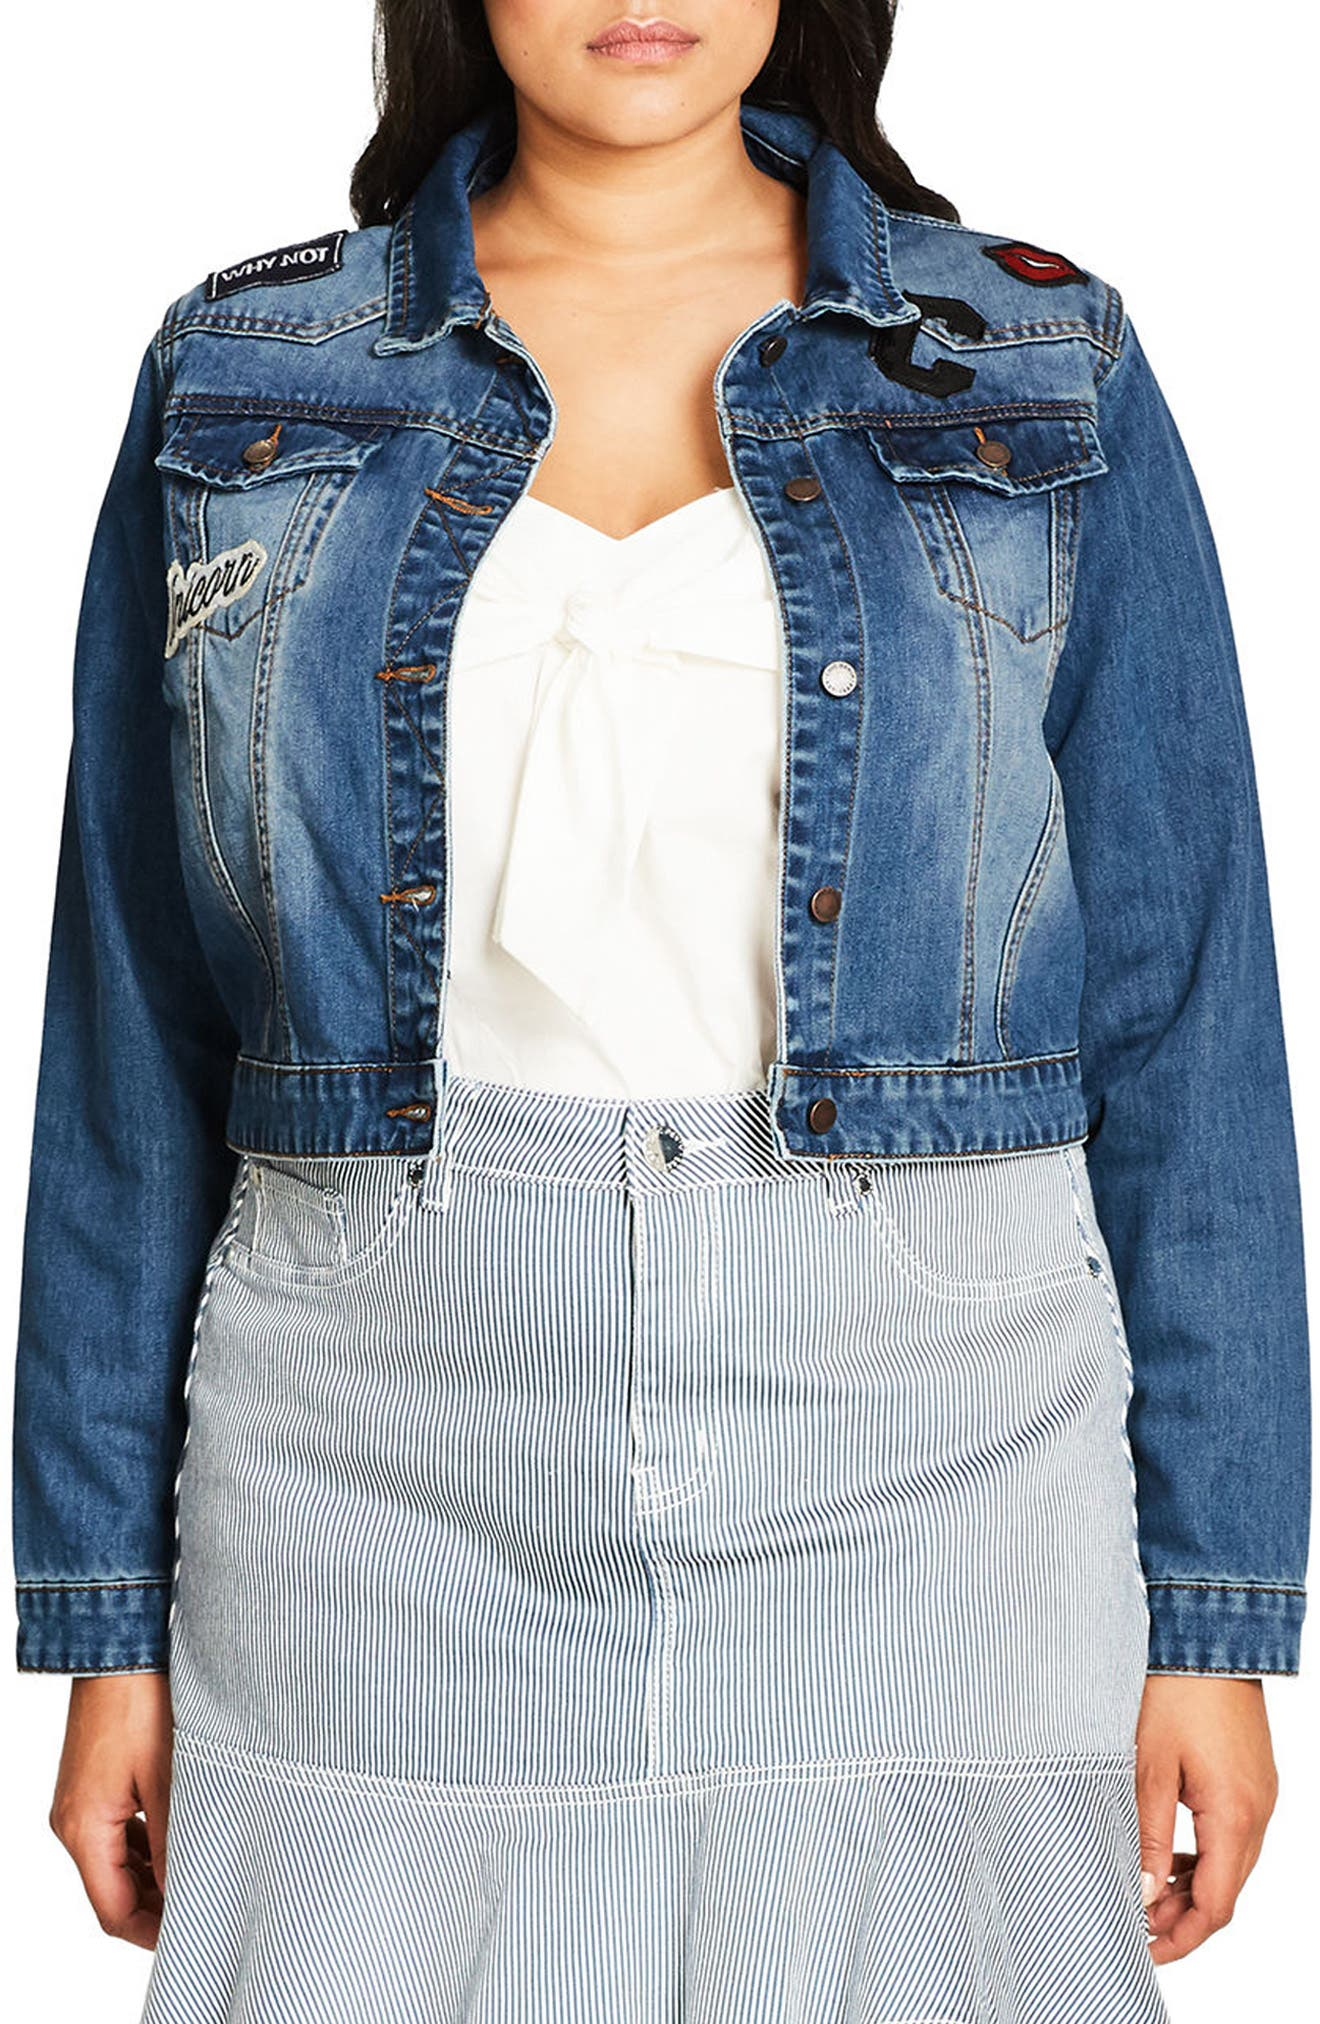 Alternate Image 1 Selected - City Chic '80s Patch Denim Jacket (Plus Size)